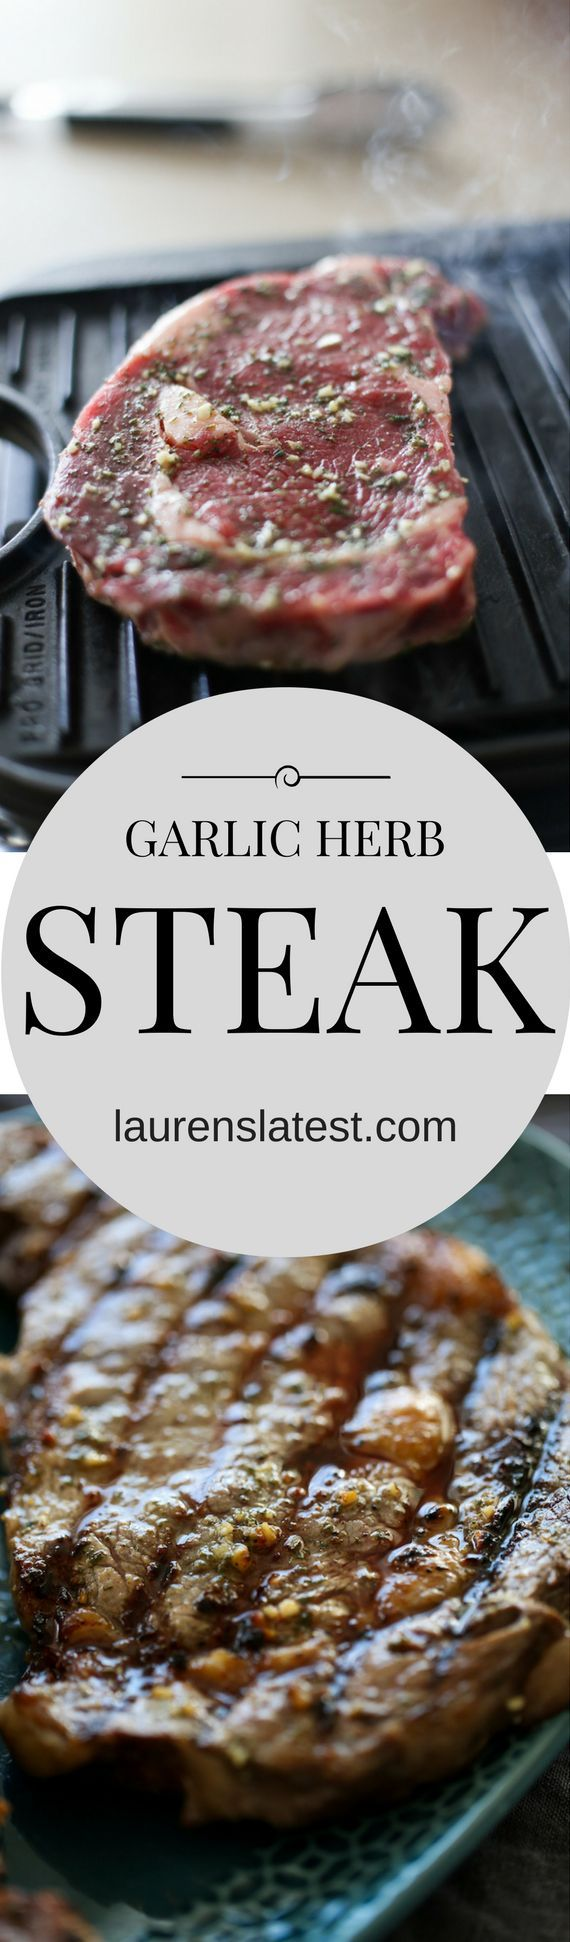 how to cook steak without oil or butter